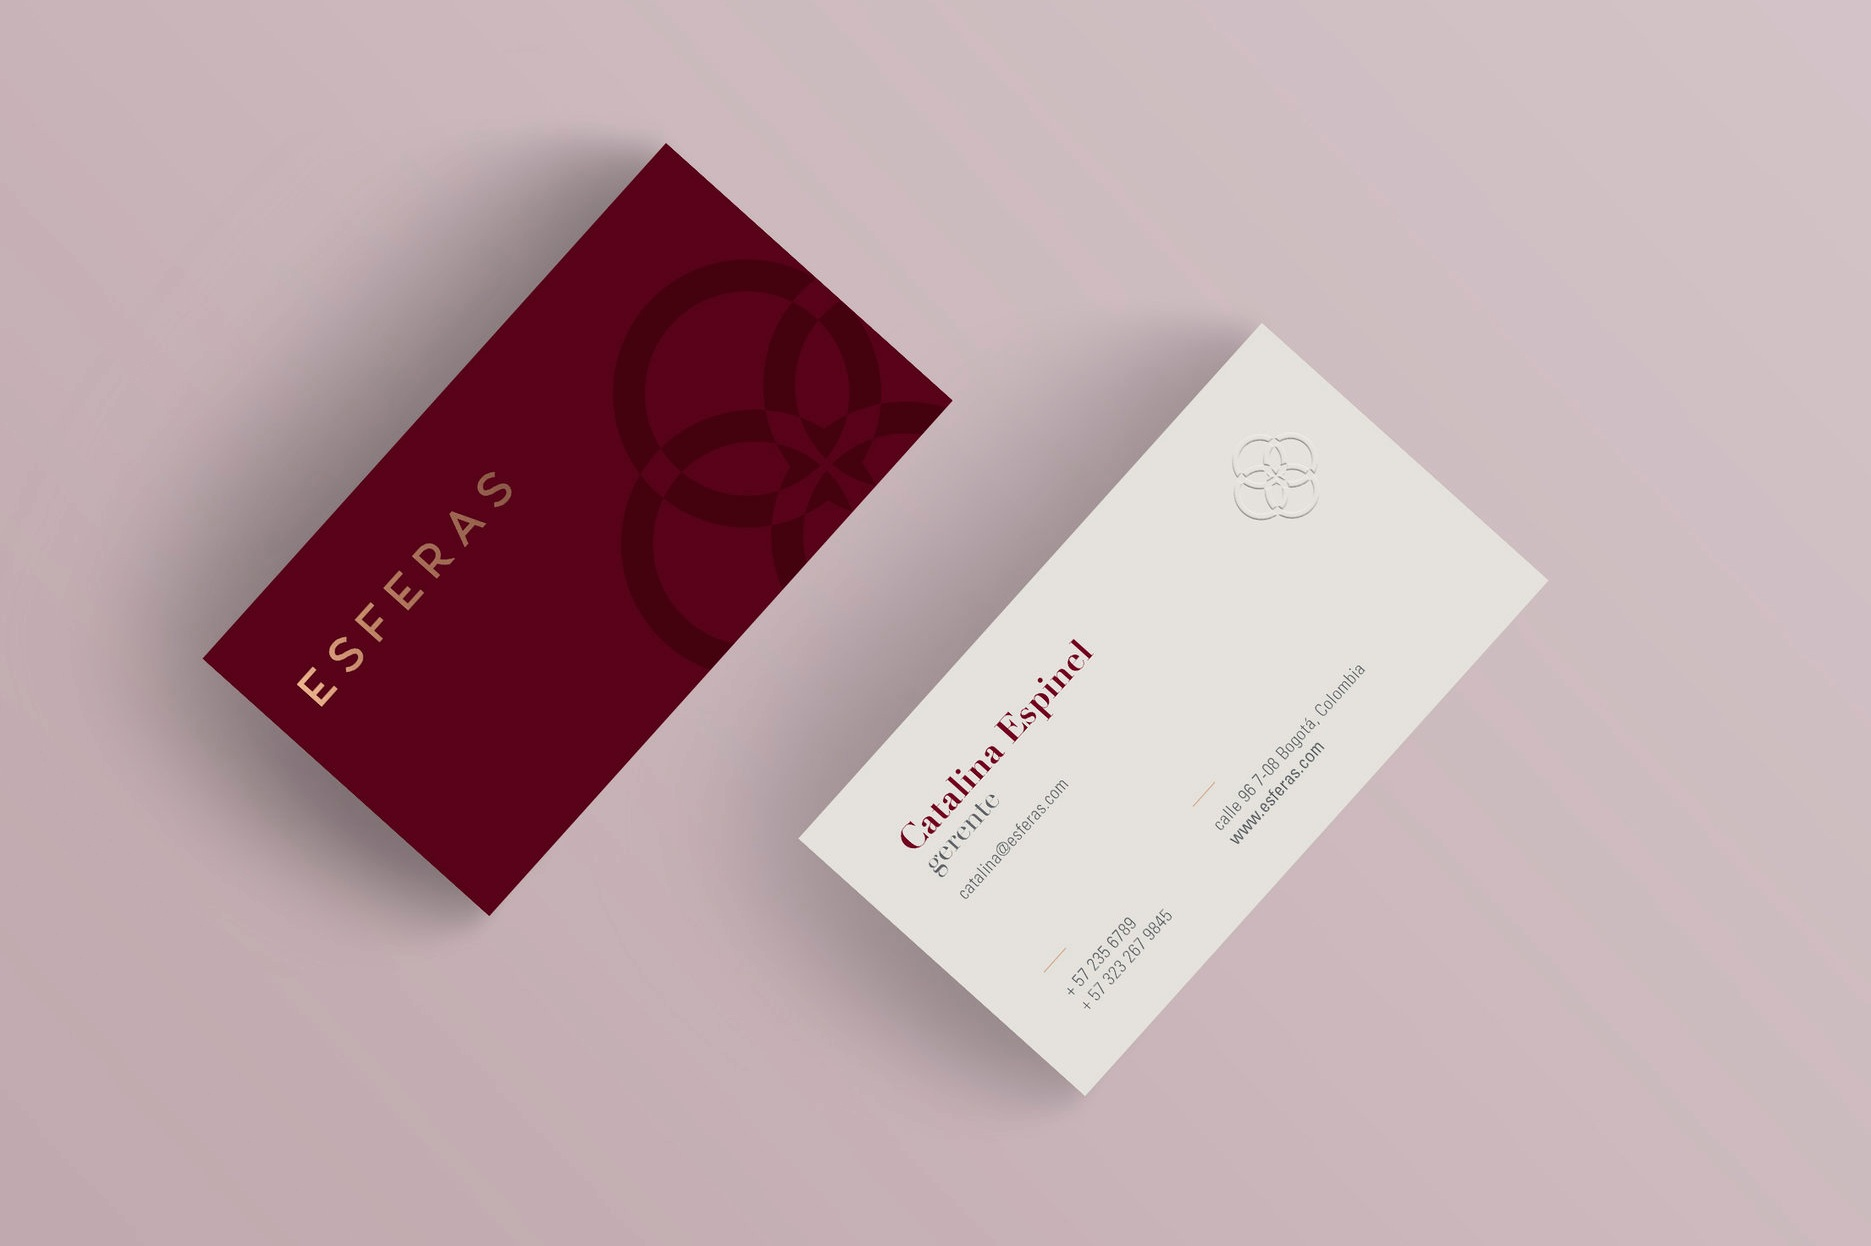 Business+Card+Mockup+15-R1-A.jpg